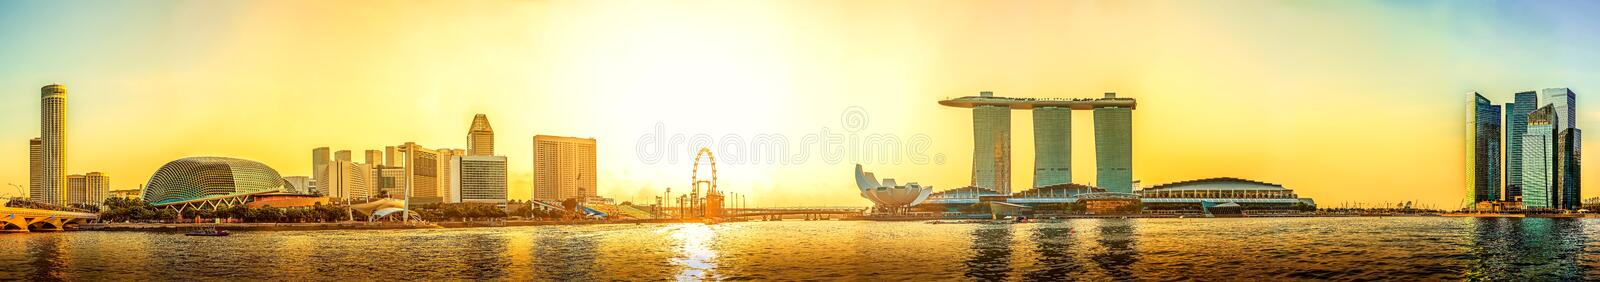 Panorama view of Singapore skyline with urban buildings in sunset. stock images